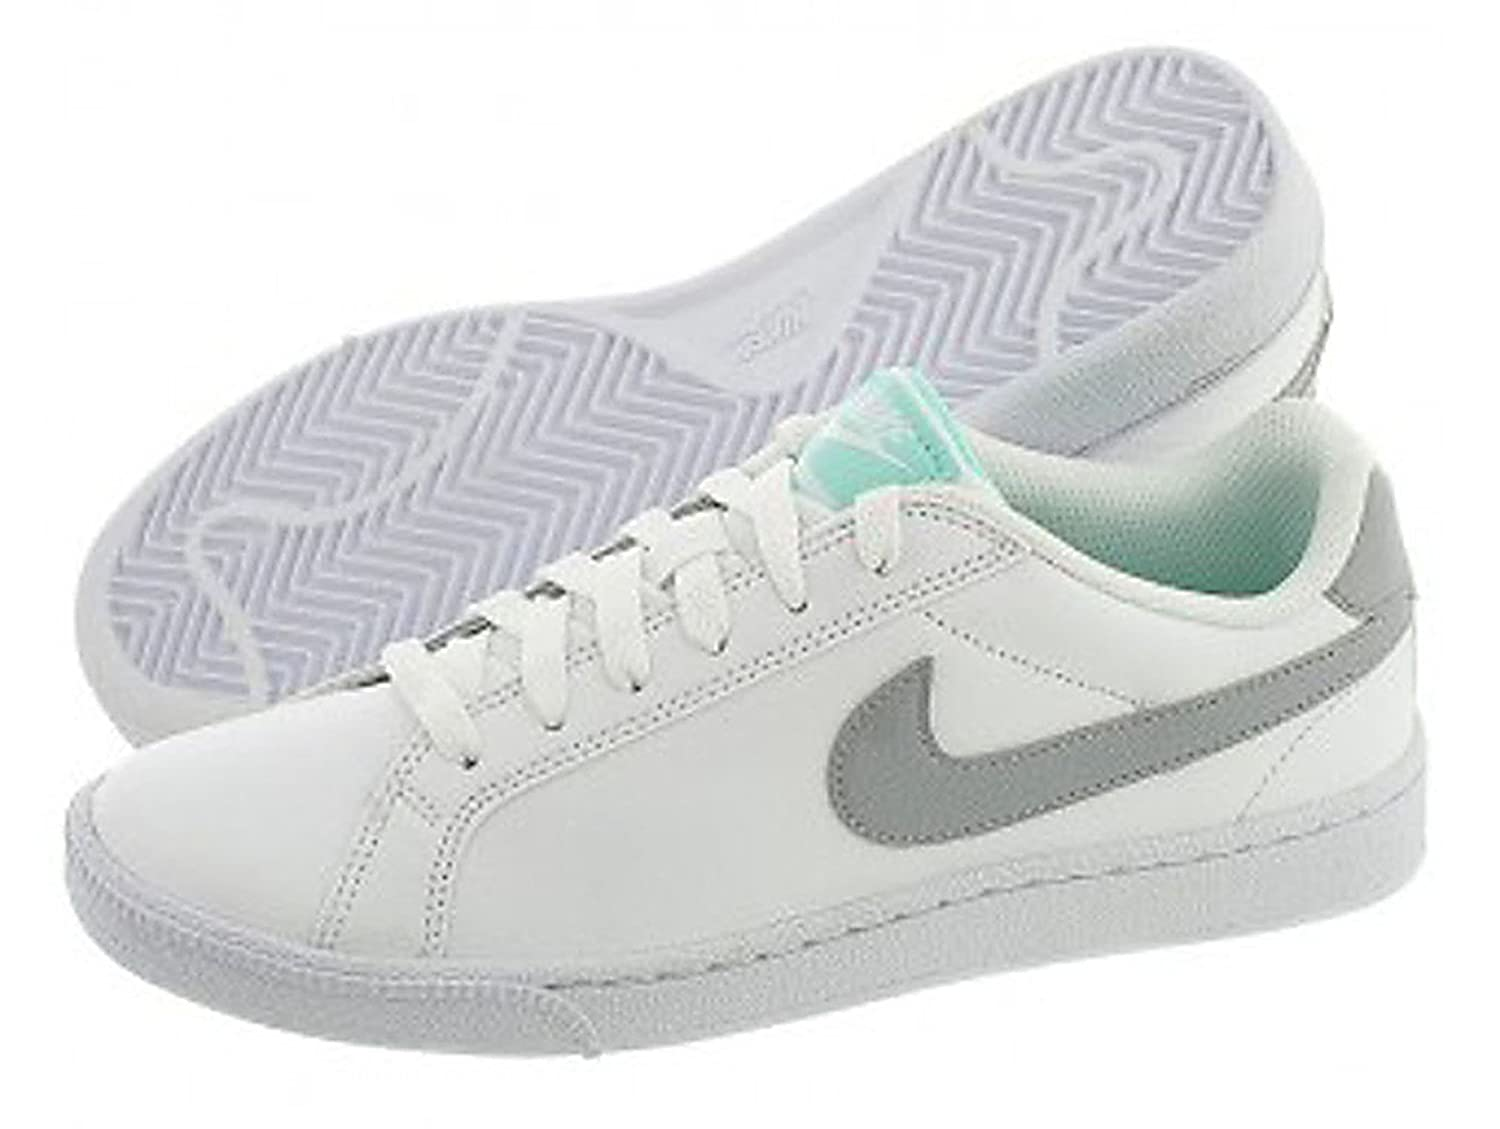 454256-117 Nike Women's Court Majestic White/Wolf-Grey/Teal